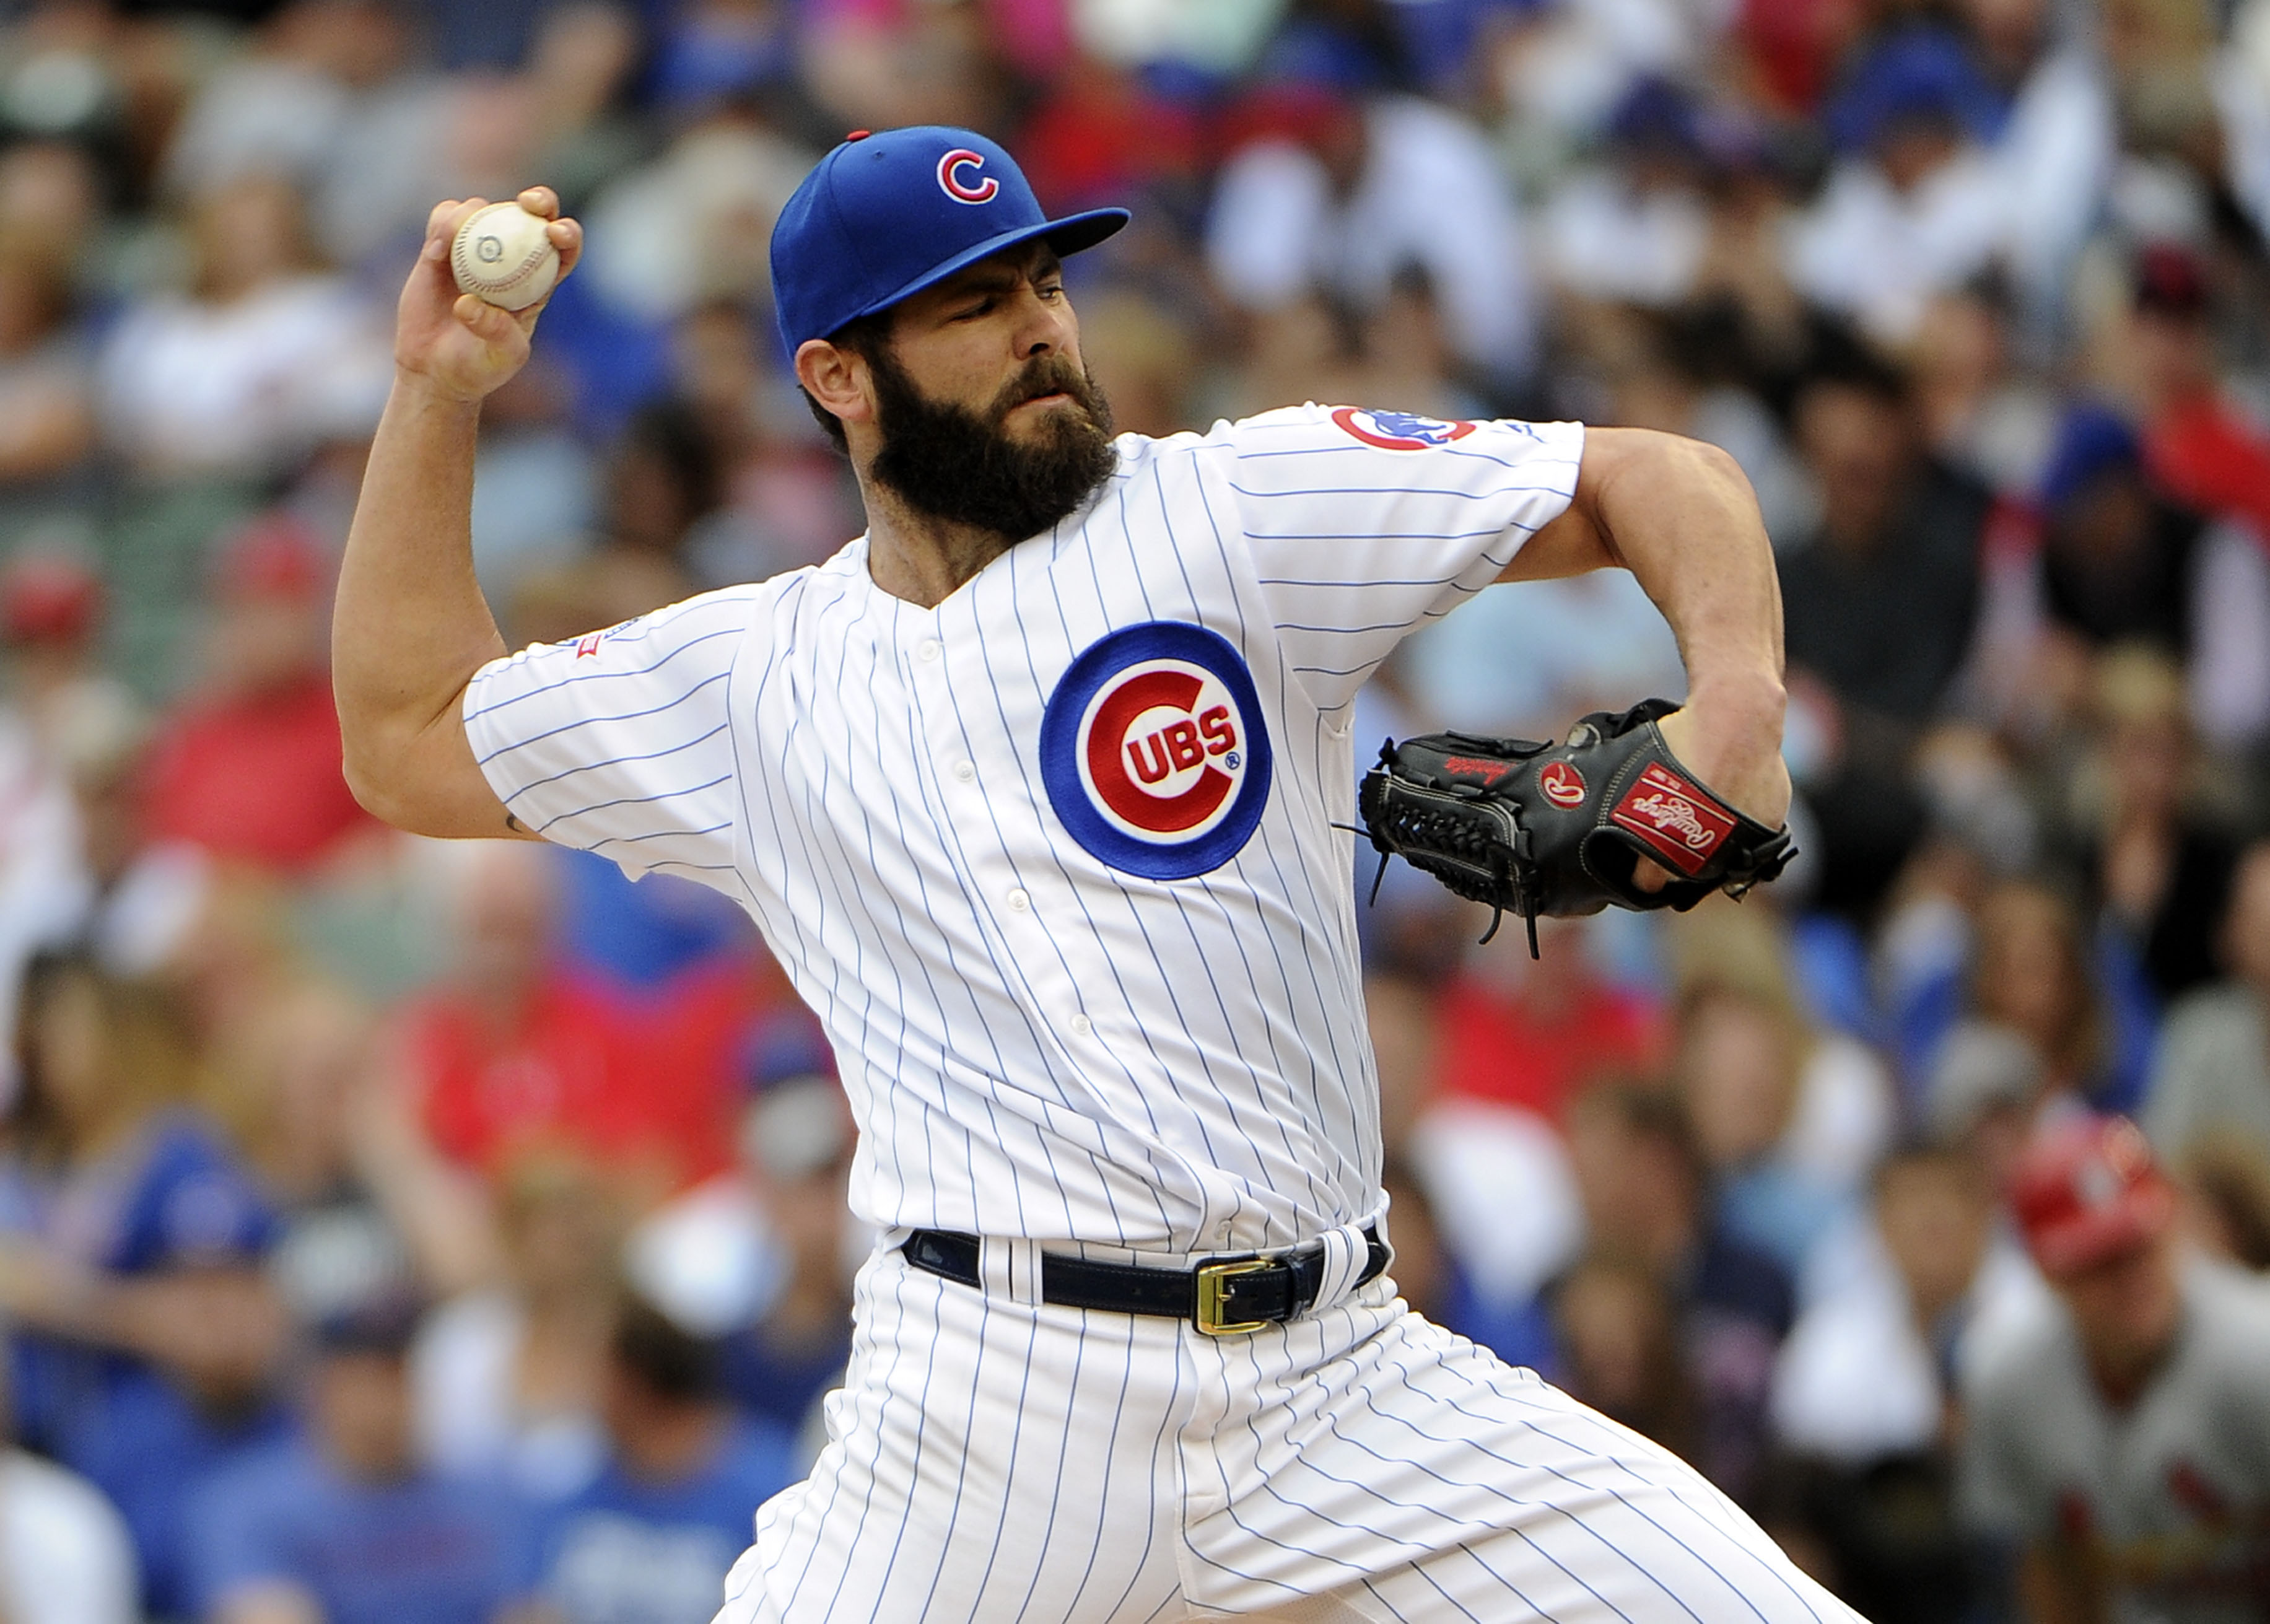 Sep 23, 2016; Chicago, IL, USA;  Chicago Cubs starting pitcher Jake Arrieta (49) throws against the St. Louis Cardinals during the first inning at Wrigley Field. Mandatory Credit: David Banks-USA TODAY Sports